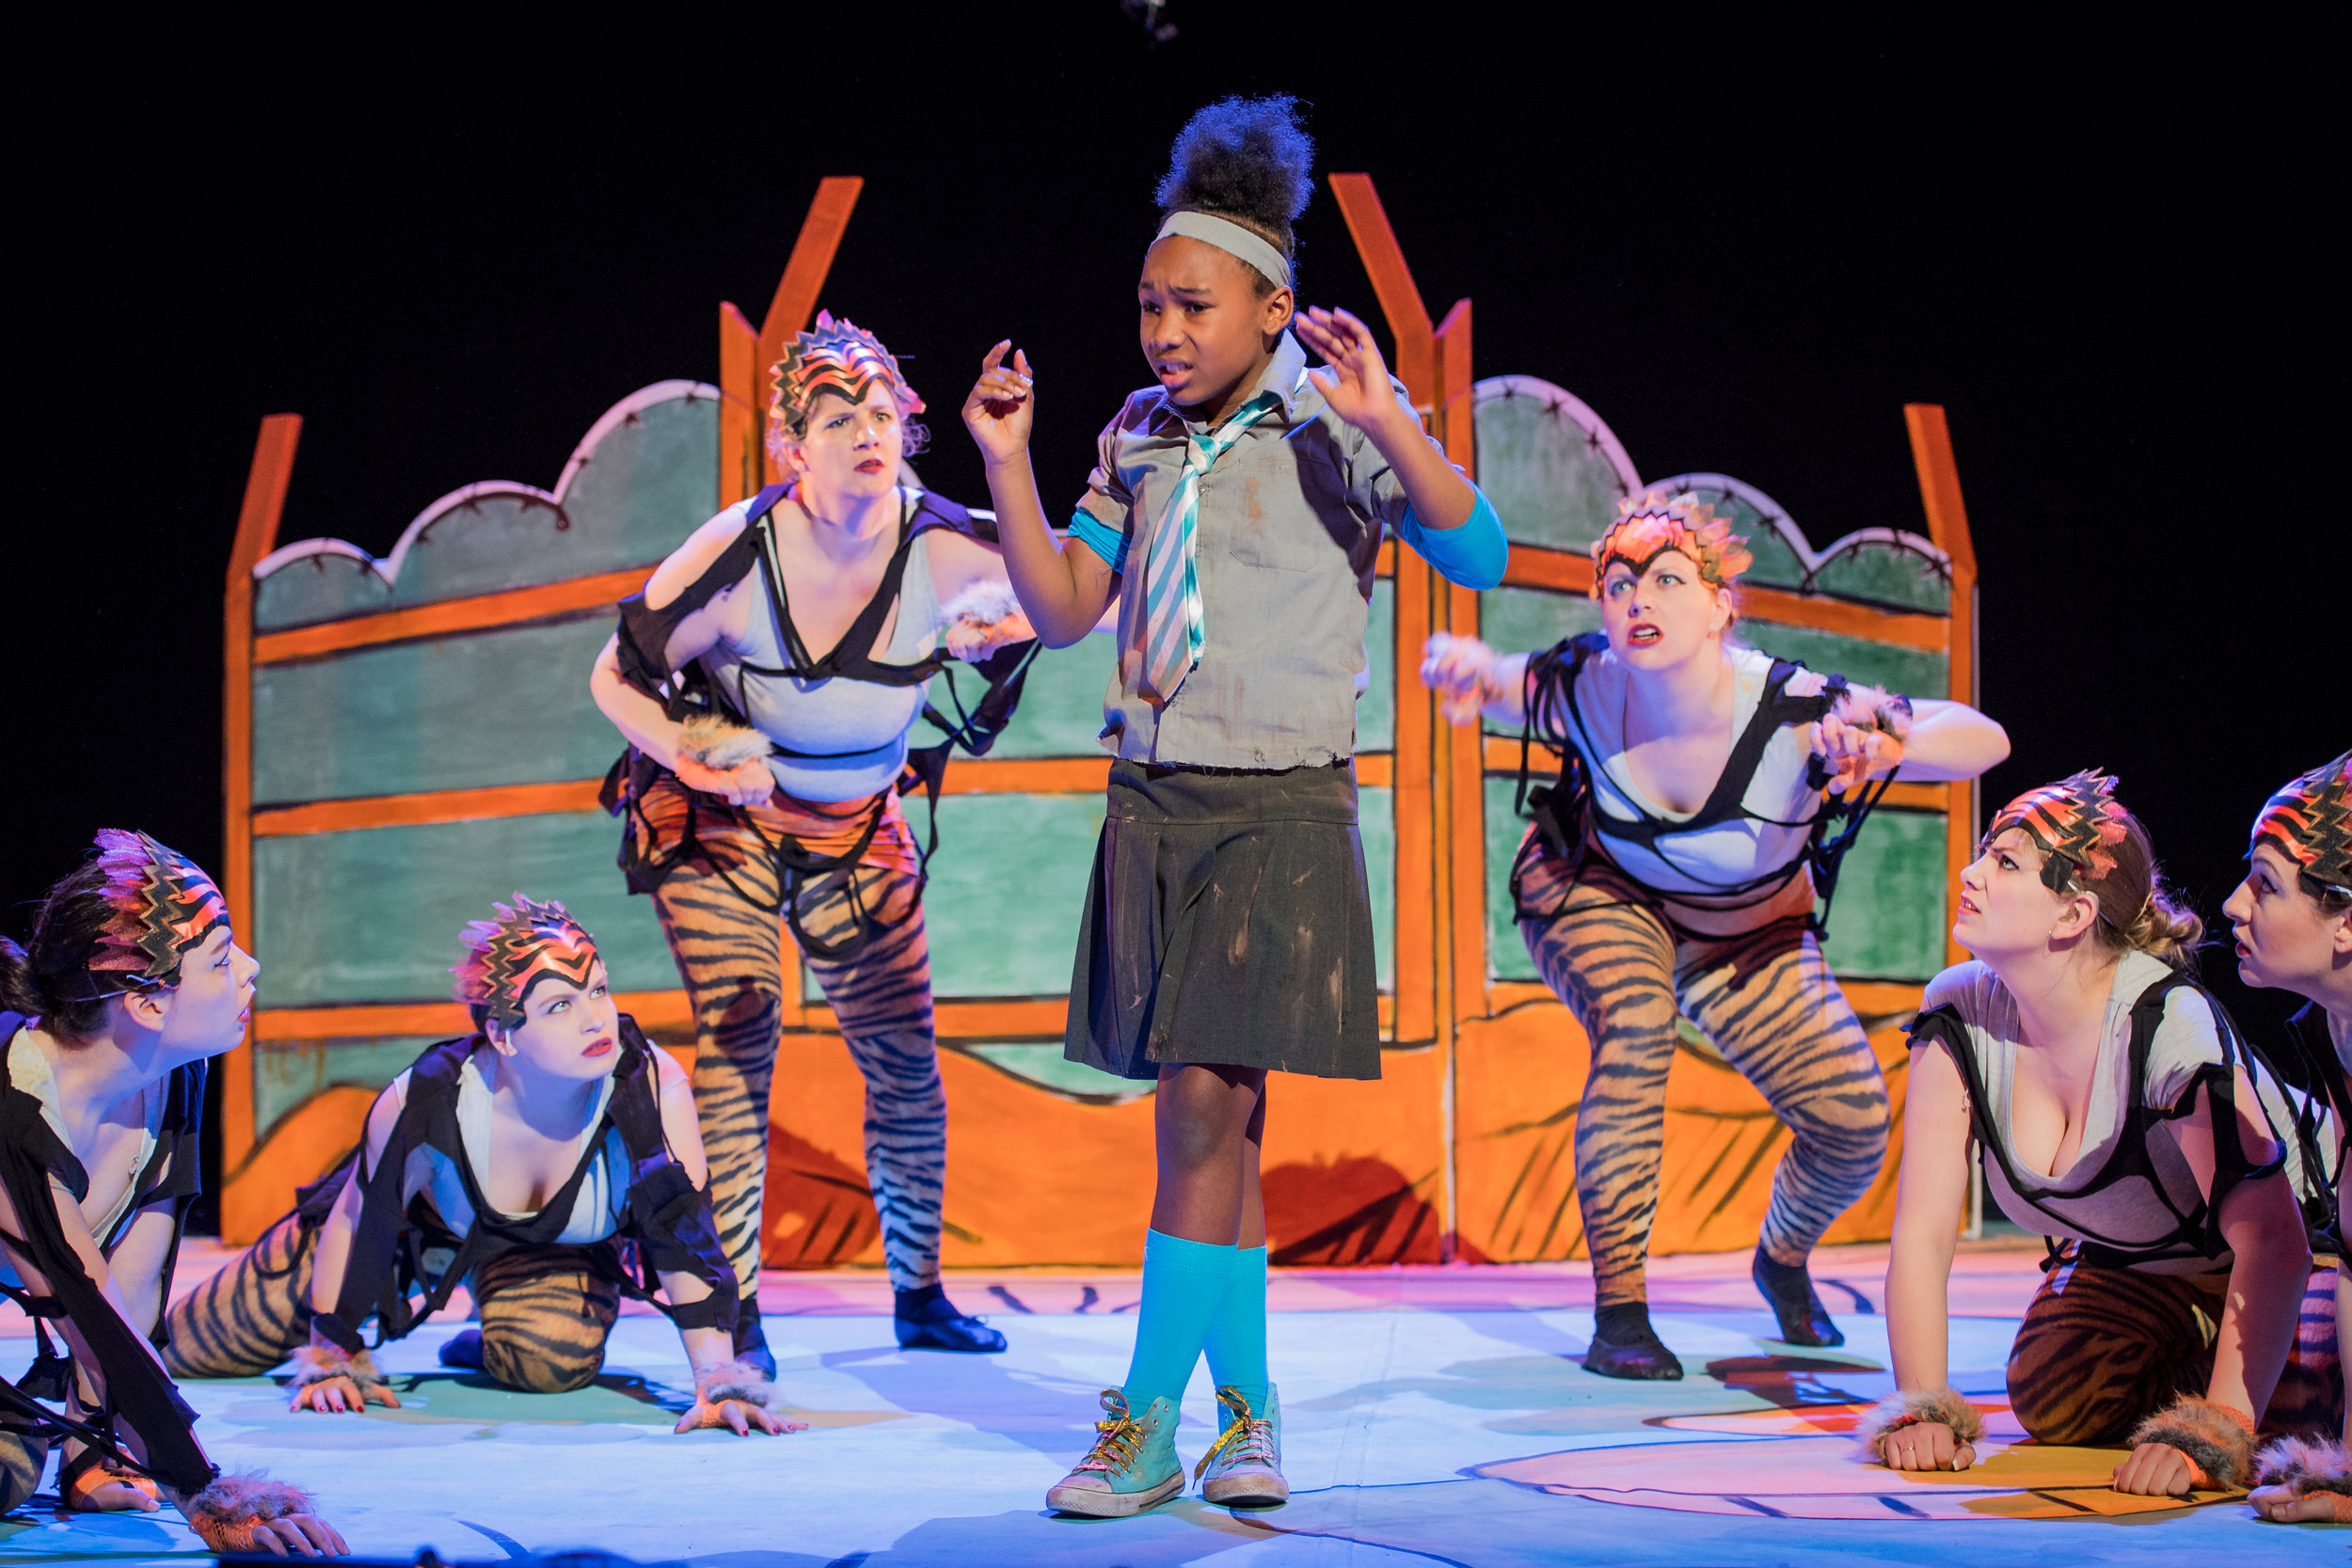 Paws and Padlocks by Kate Whitley - Blackheath Children's Opera (photo Robert Workman)